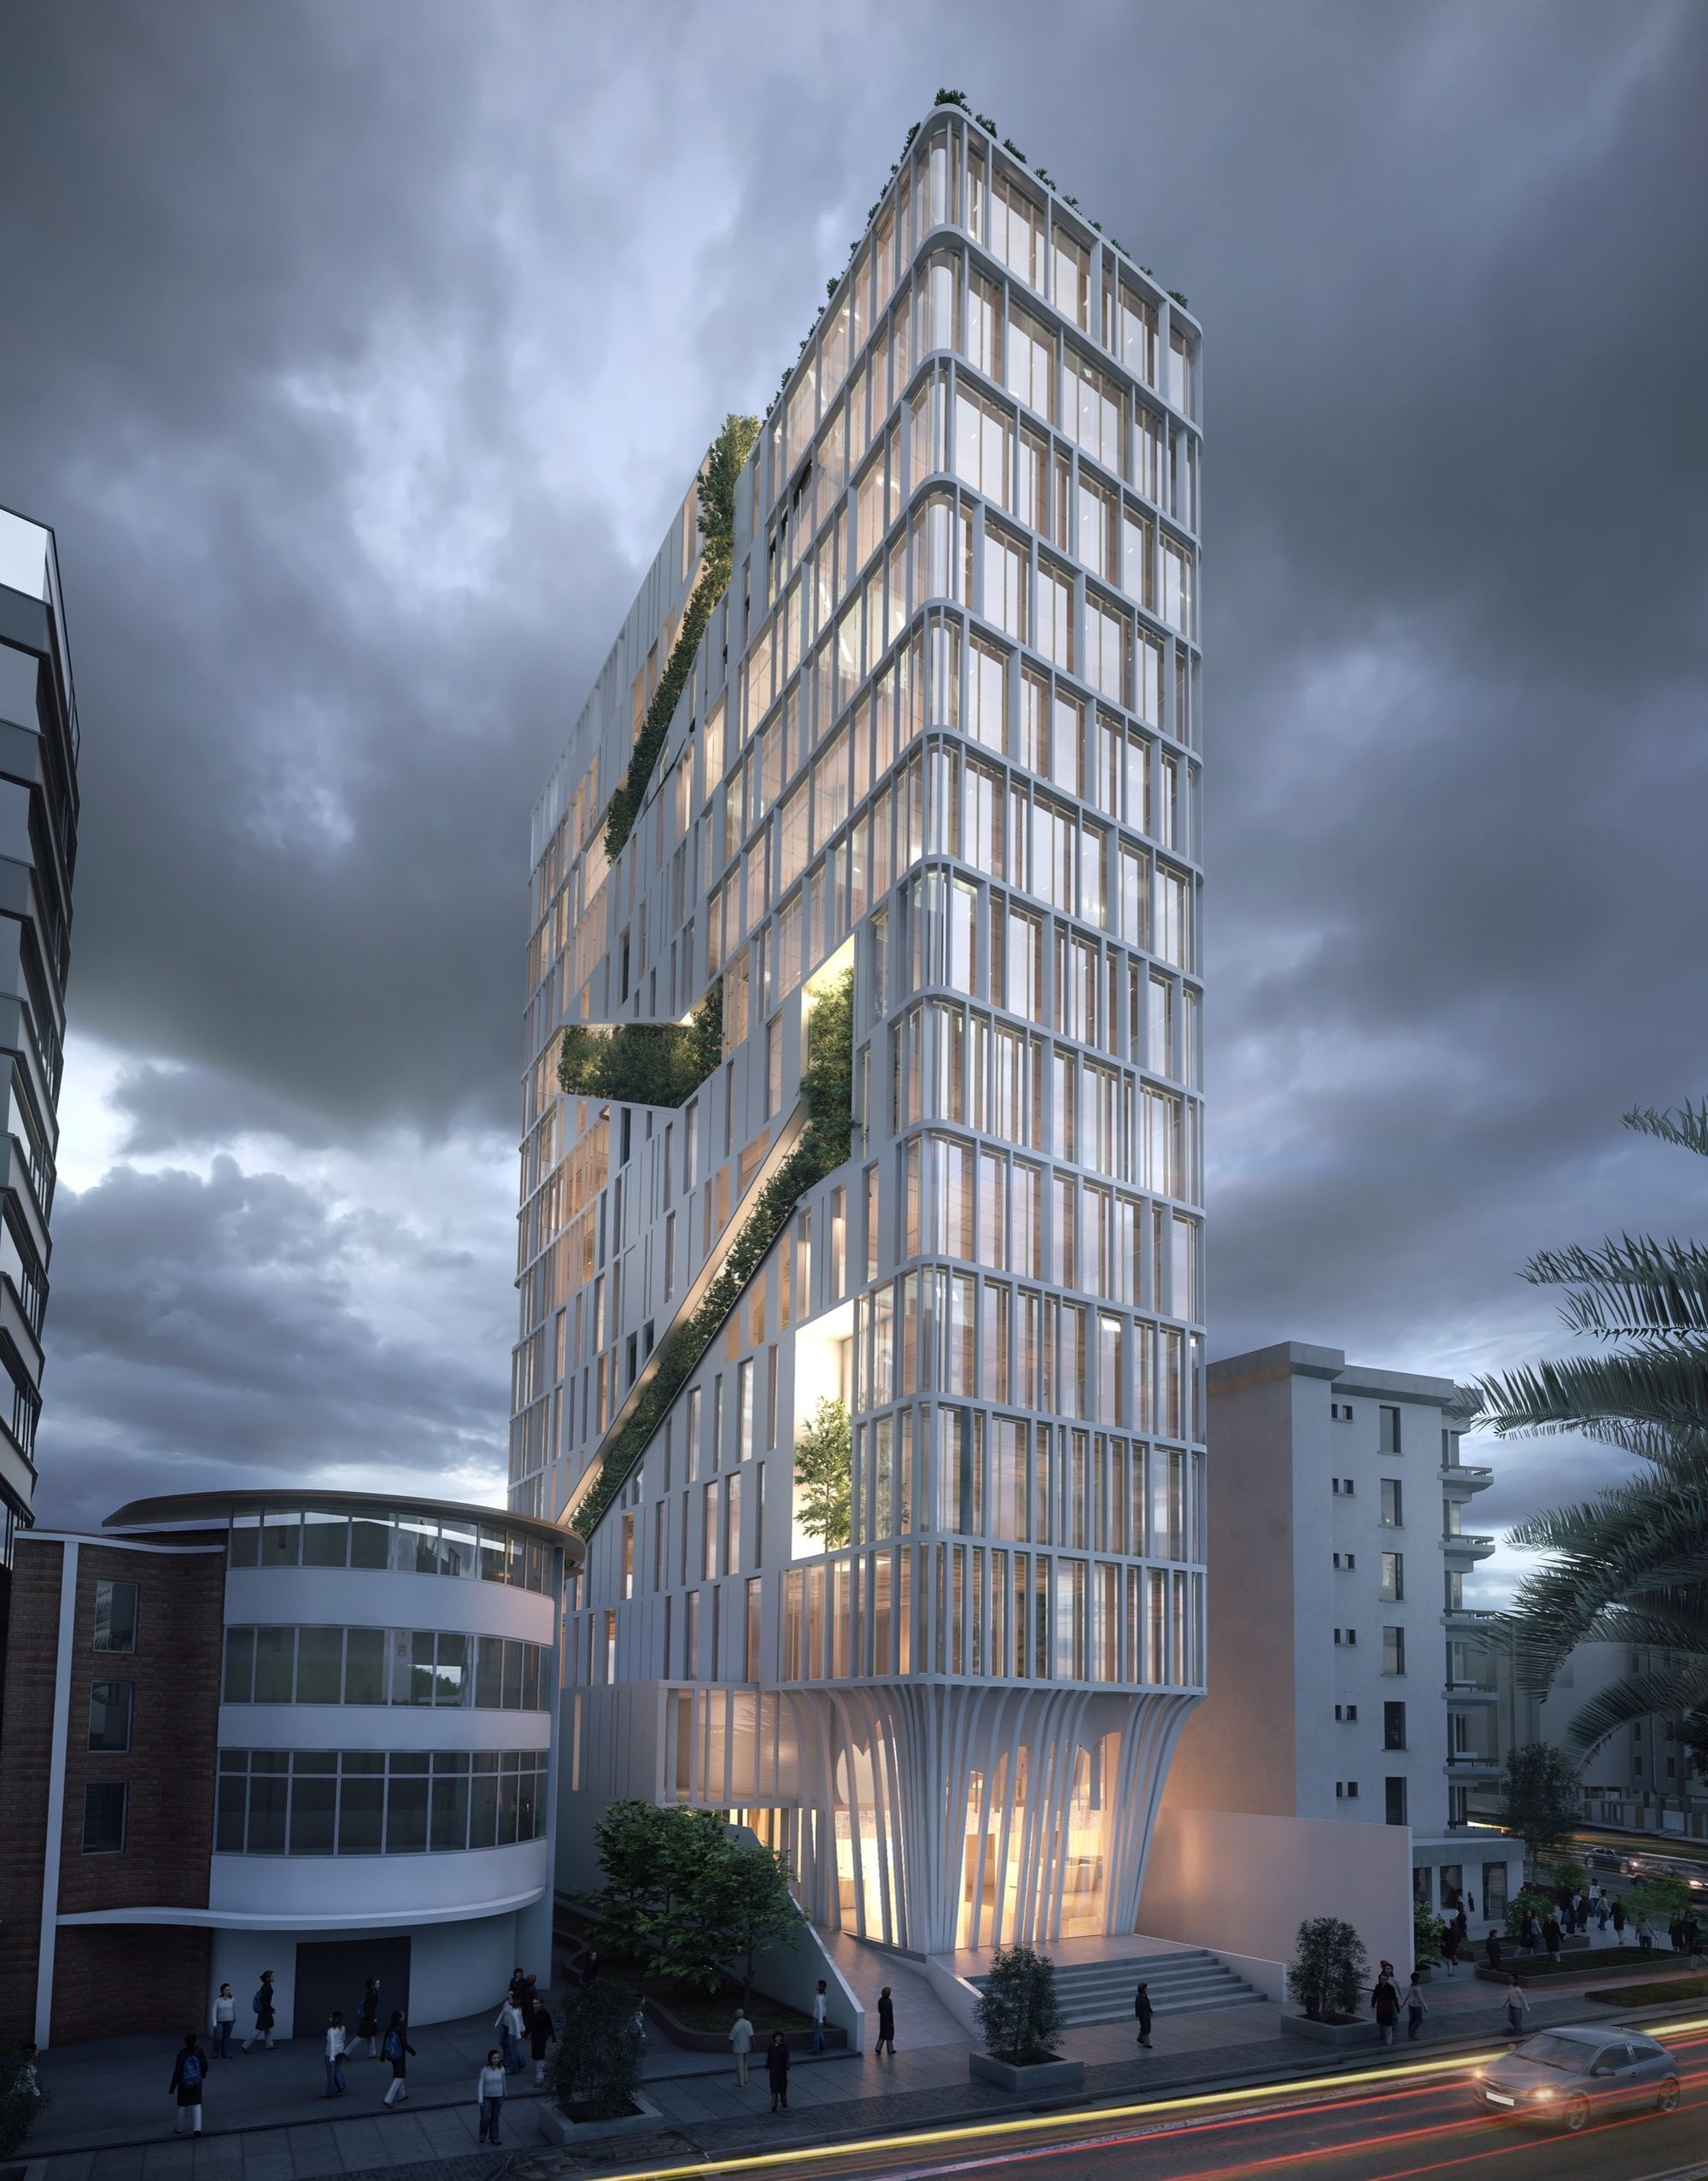 Gallery Of Odd Architects Design Slender Tower In Ecuador To Connect With Nature 2 Facade Architecture Architect Design Amazing Architecture